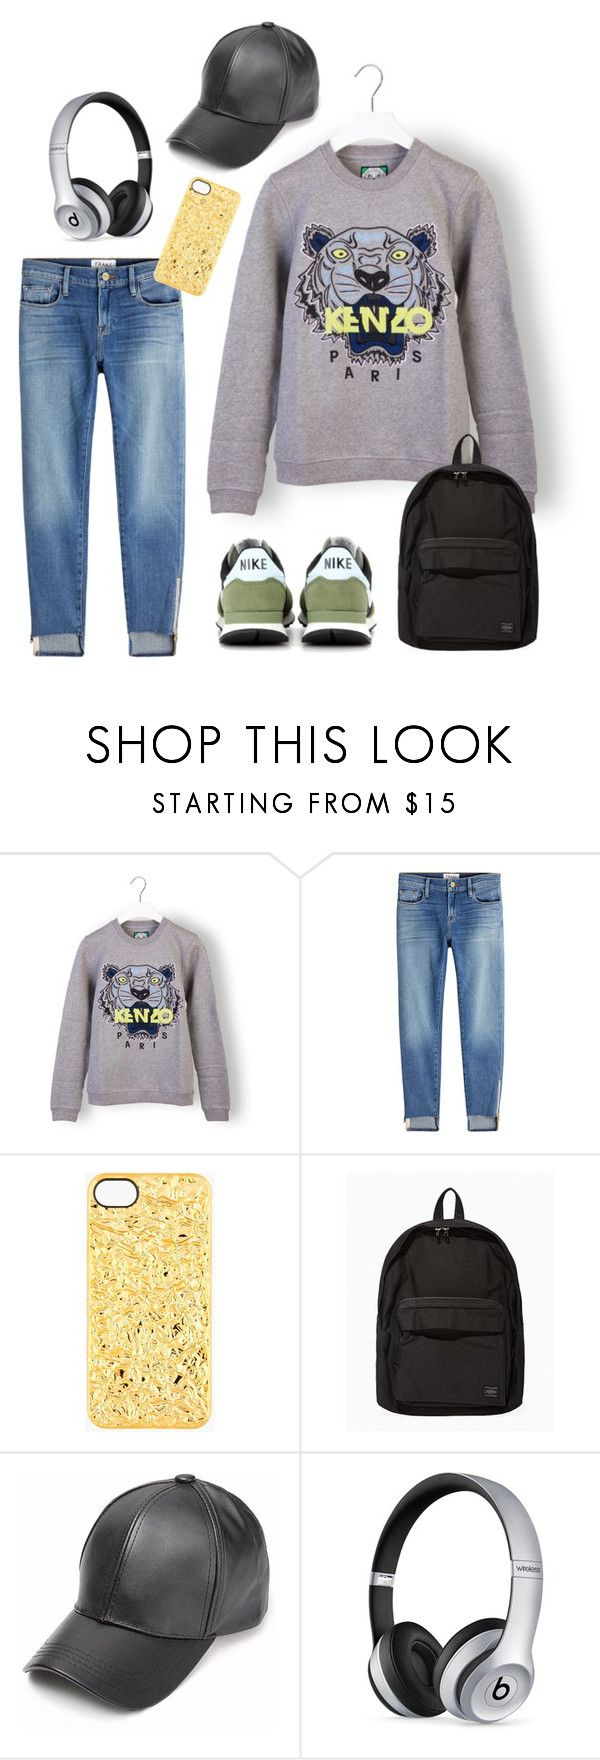 """Kenzo Tiger Sweat"" by missmelaniejane on Polyvore featuring Kenzo, Frame, Marc by Marc Jacobs, Porter, Beats by Dr. Dre and NIKE"